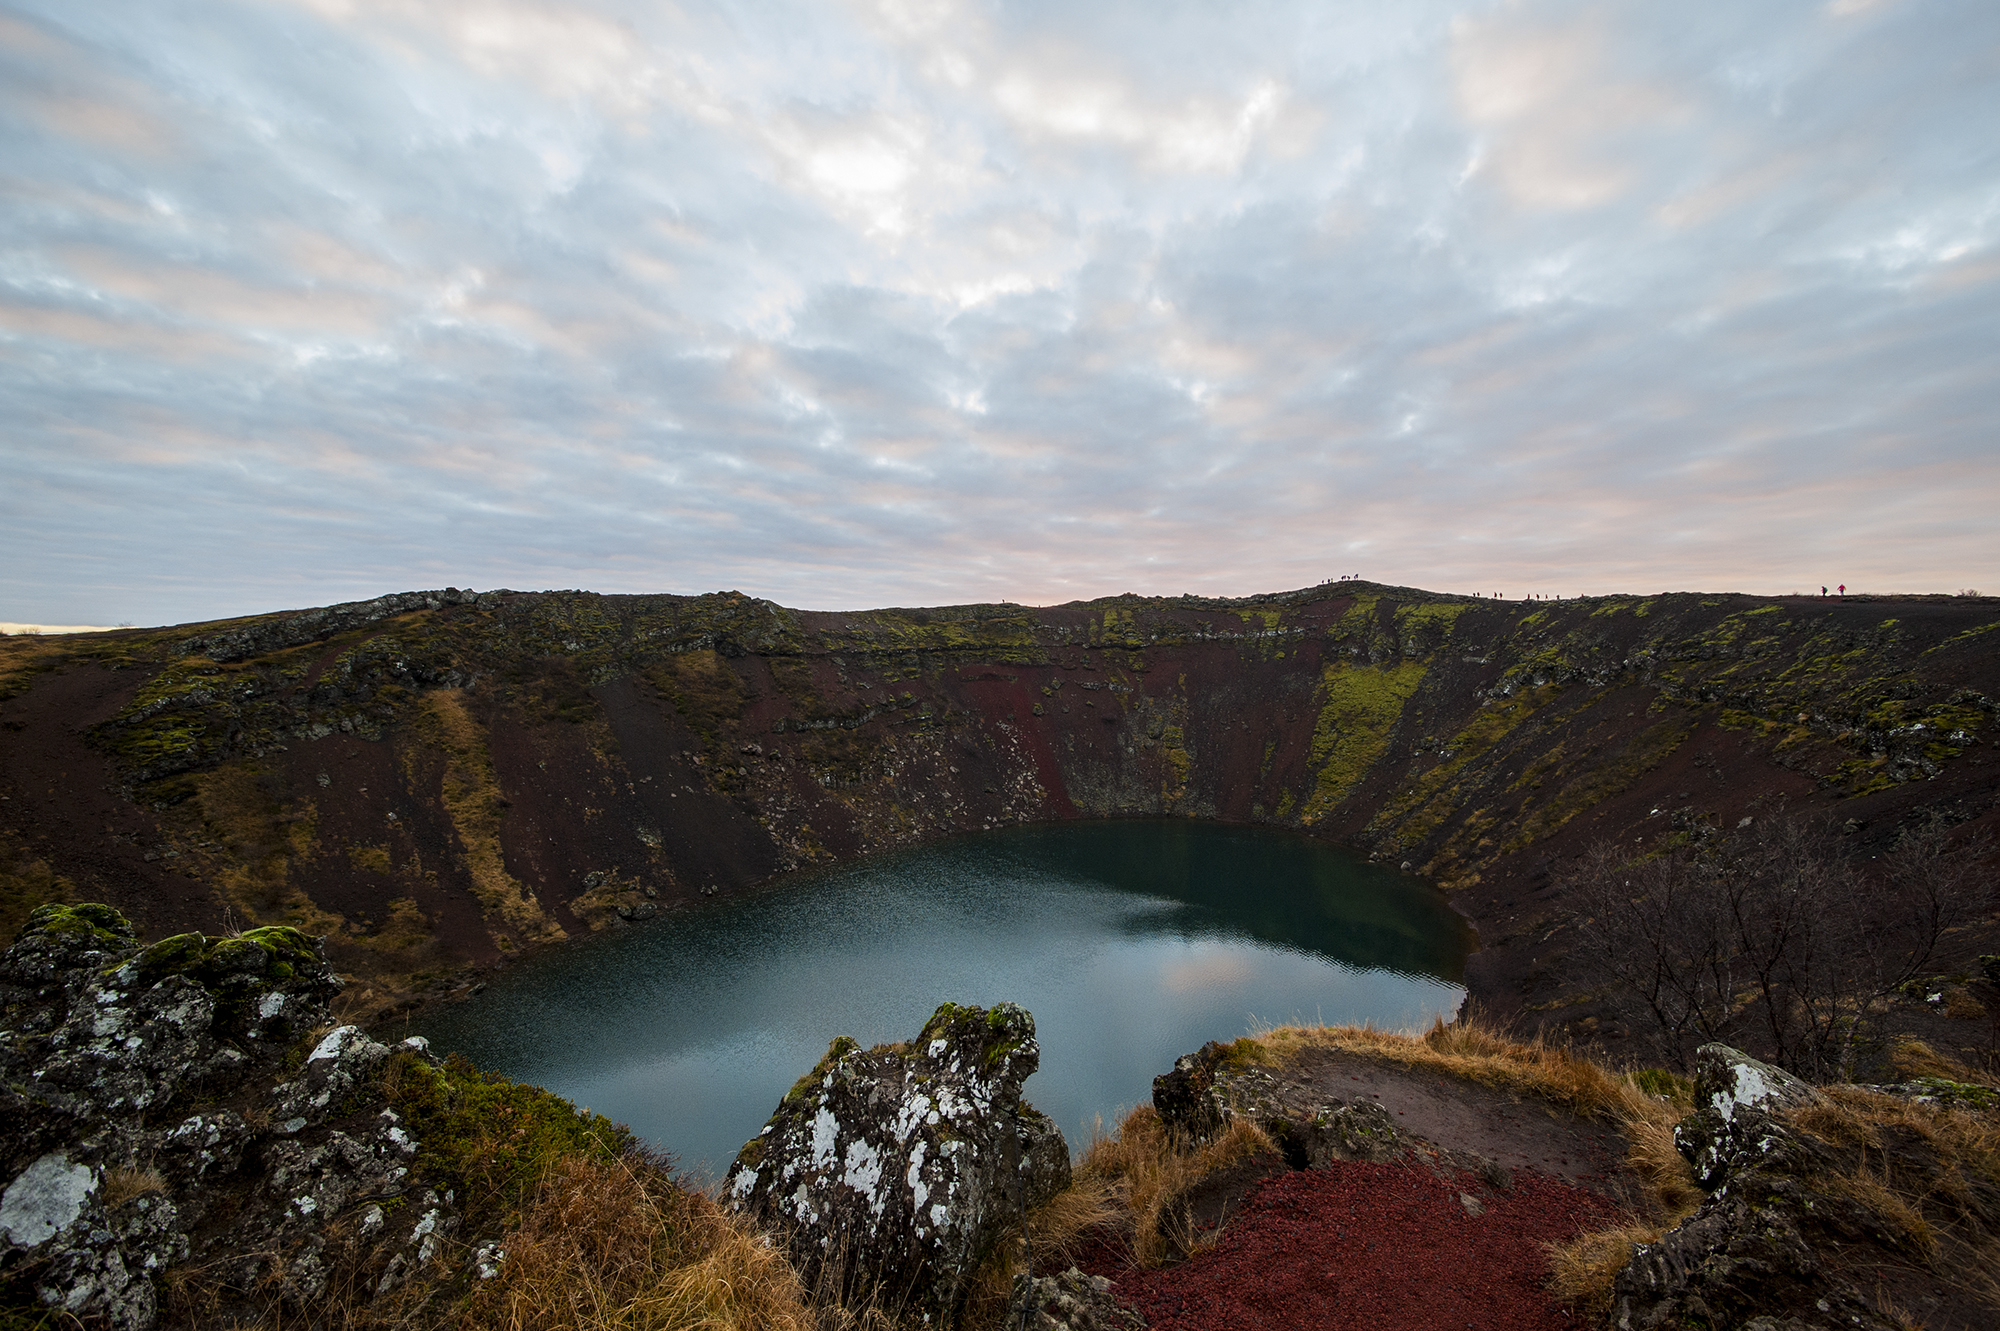 See the red walls and turquoise water of the crater lake Kerið on this Golden Circle minibus tour.